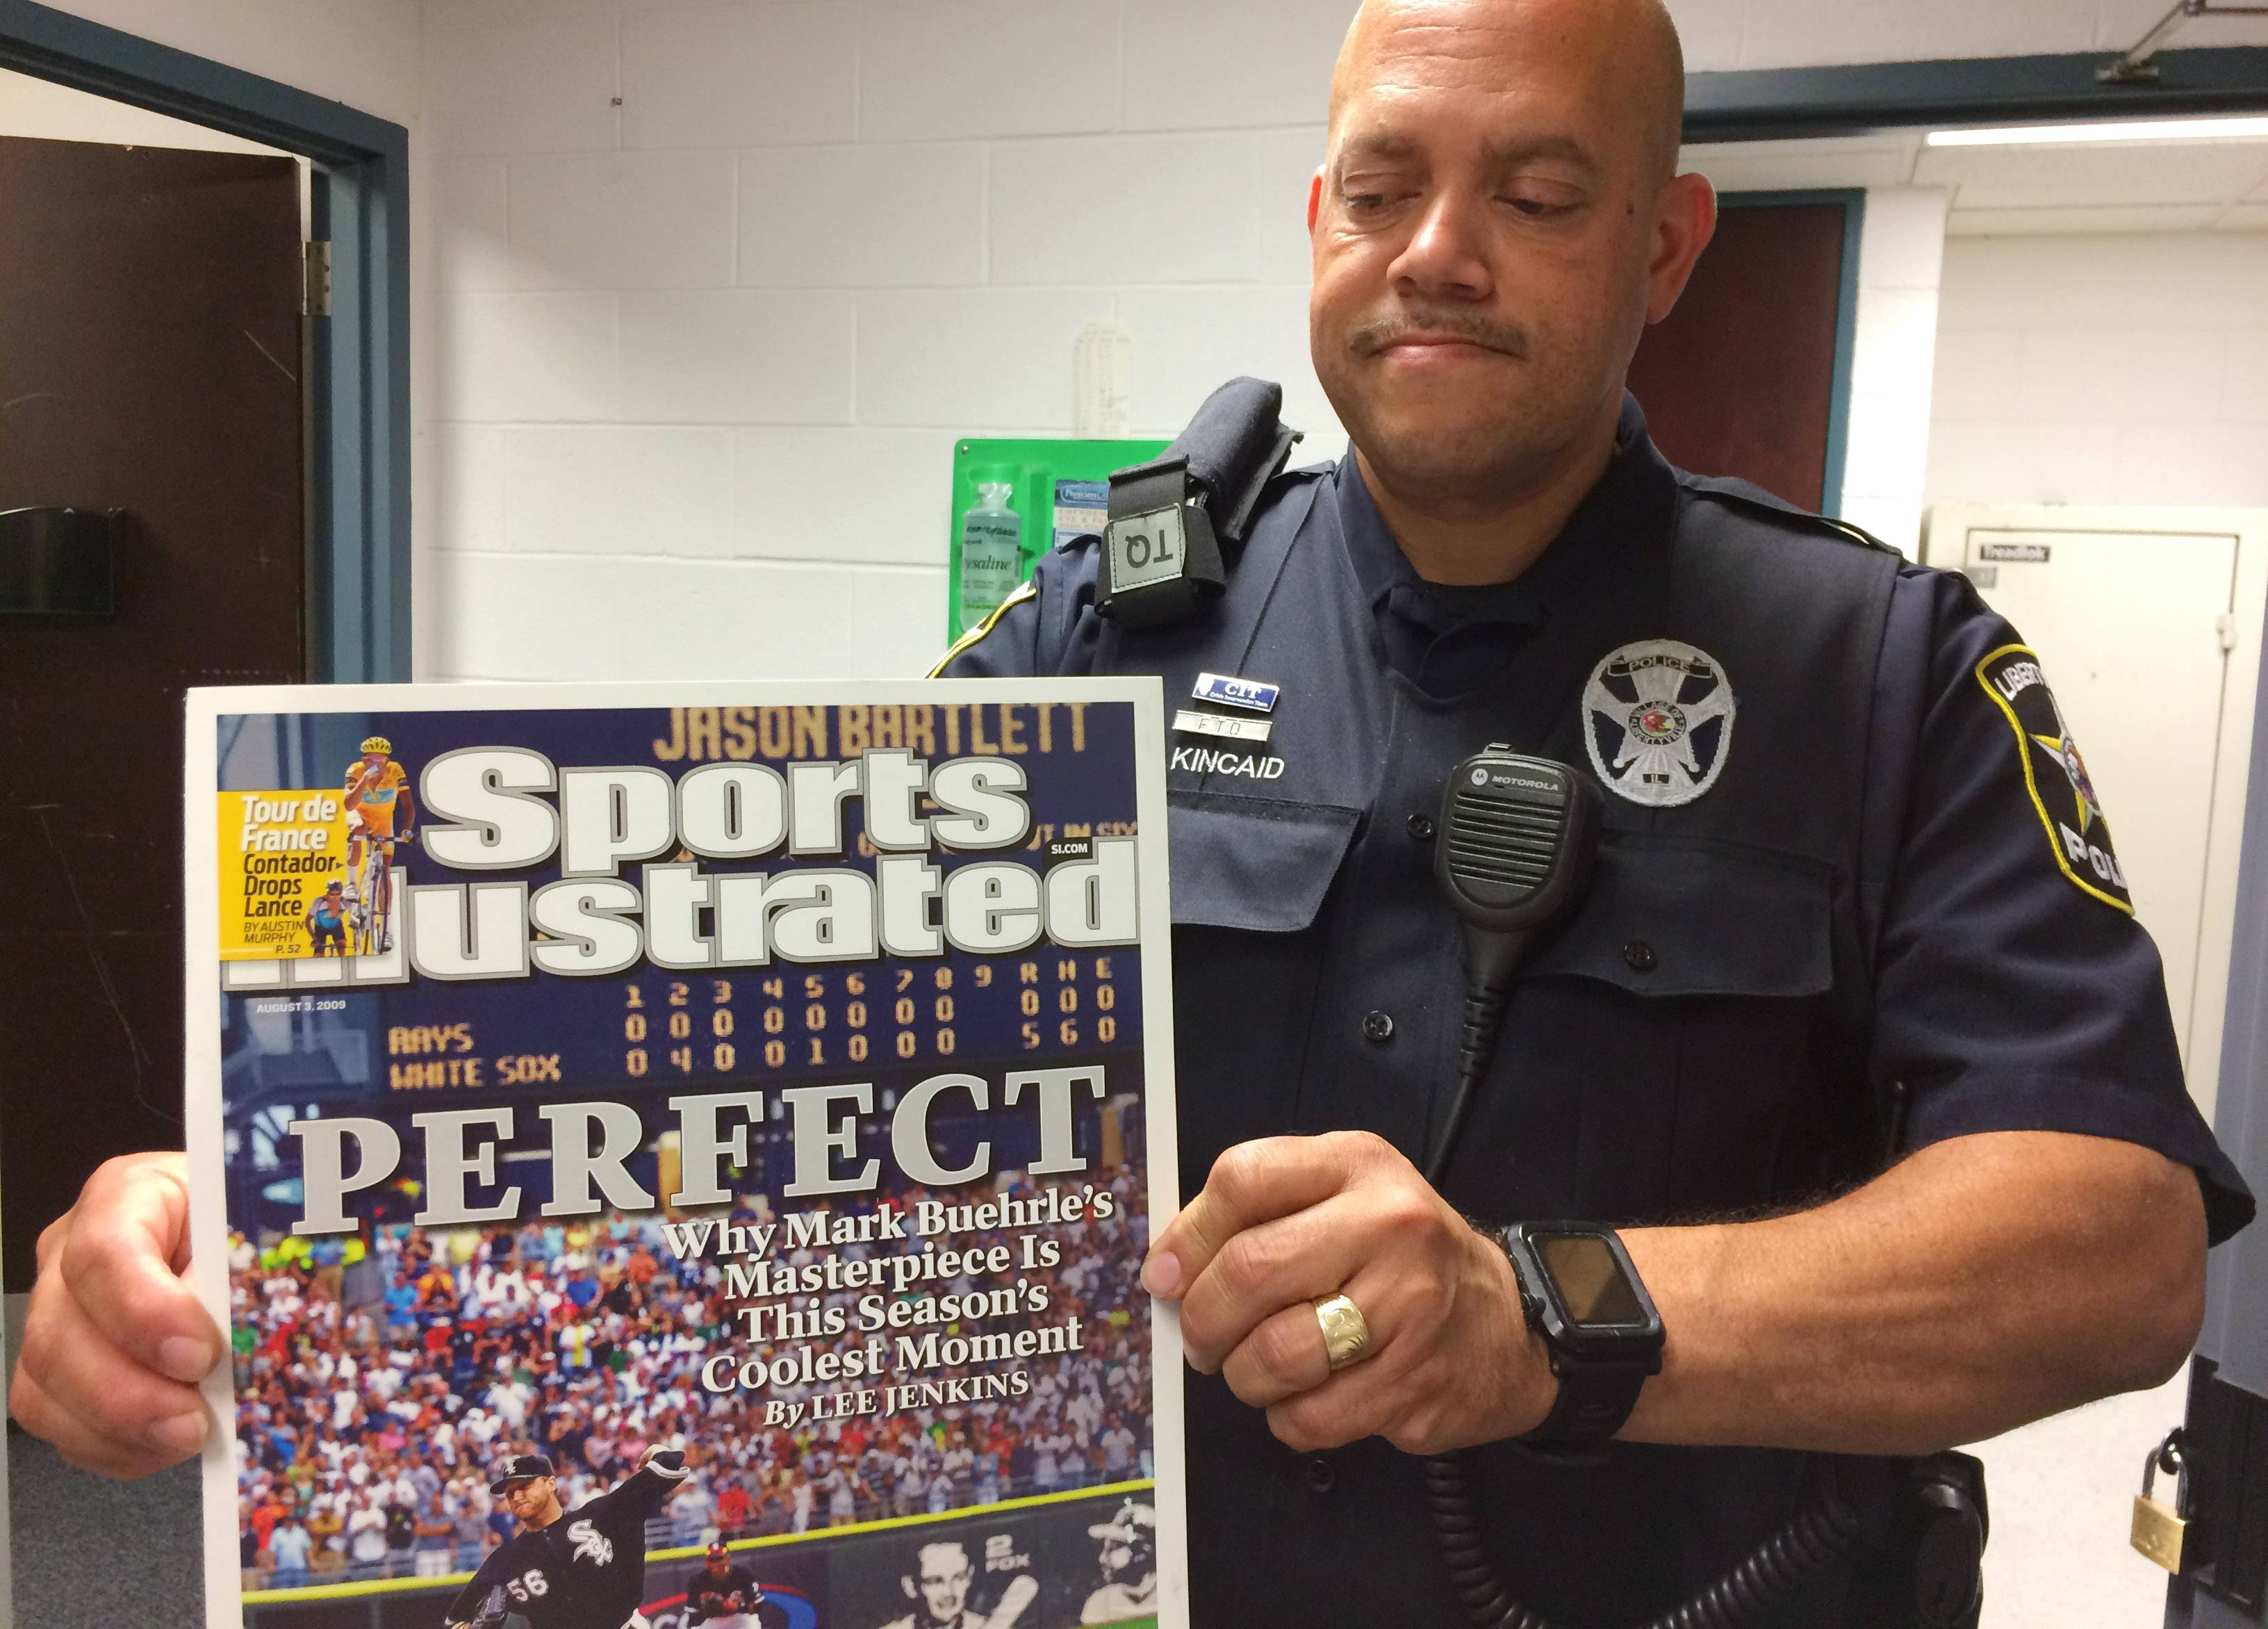 Libertyville Police Officer Wayne Kincaid, an evidence custodian, displays one of the posters included in a variety of sports memorabilia that has been stored at the station.